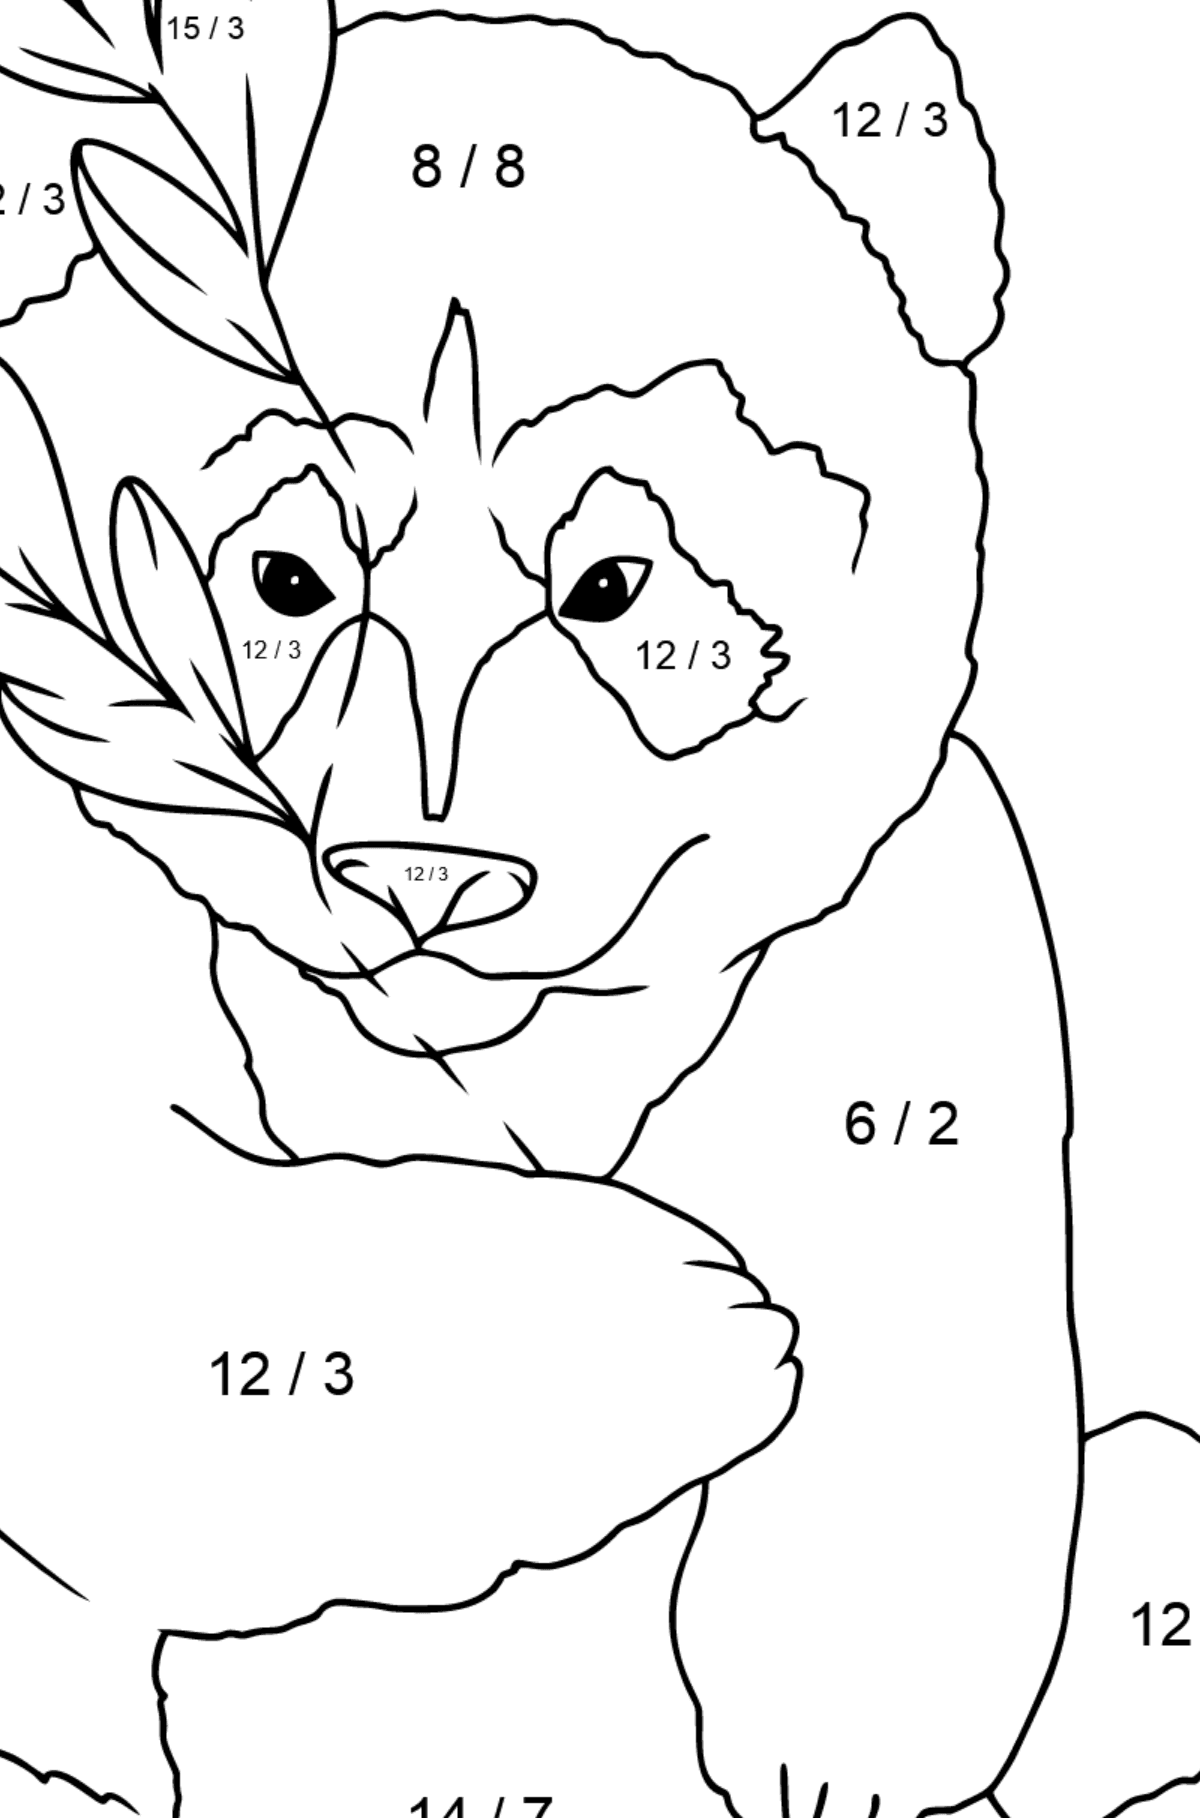 Coloring Page - A Panda is Hugging Bamboo Leaves - Math Coloring - Division for Children